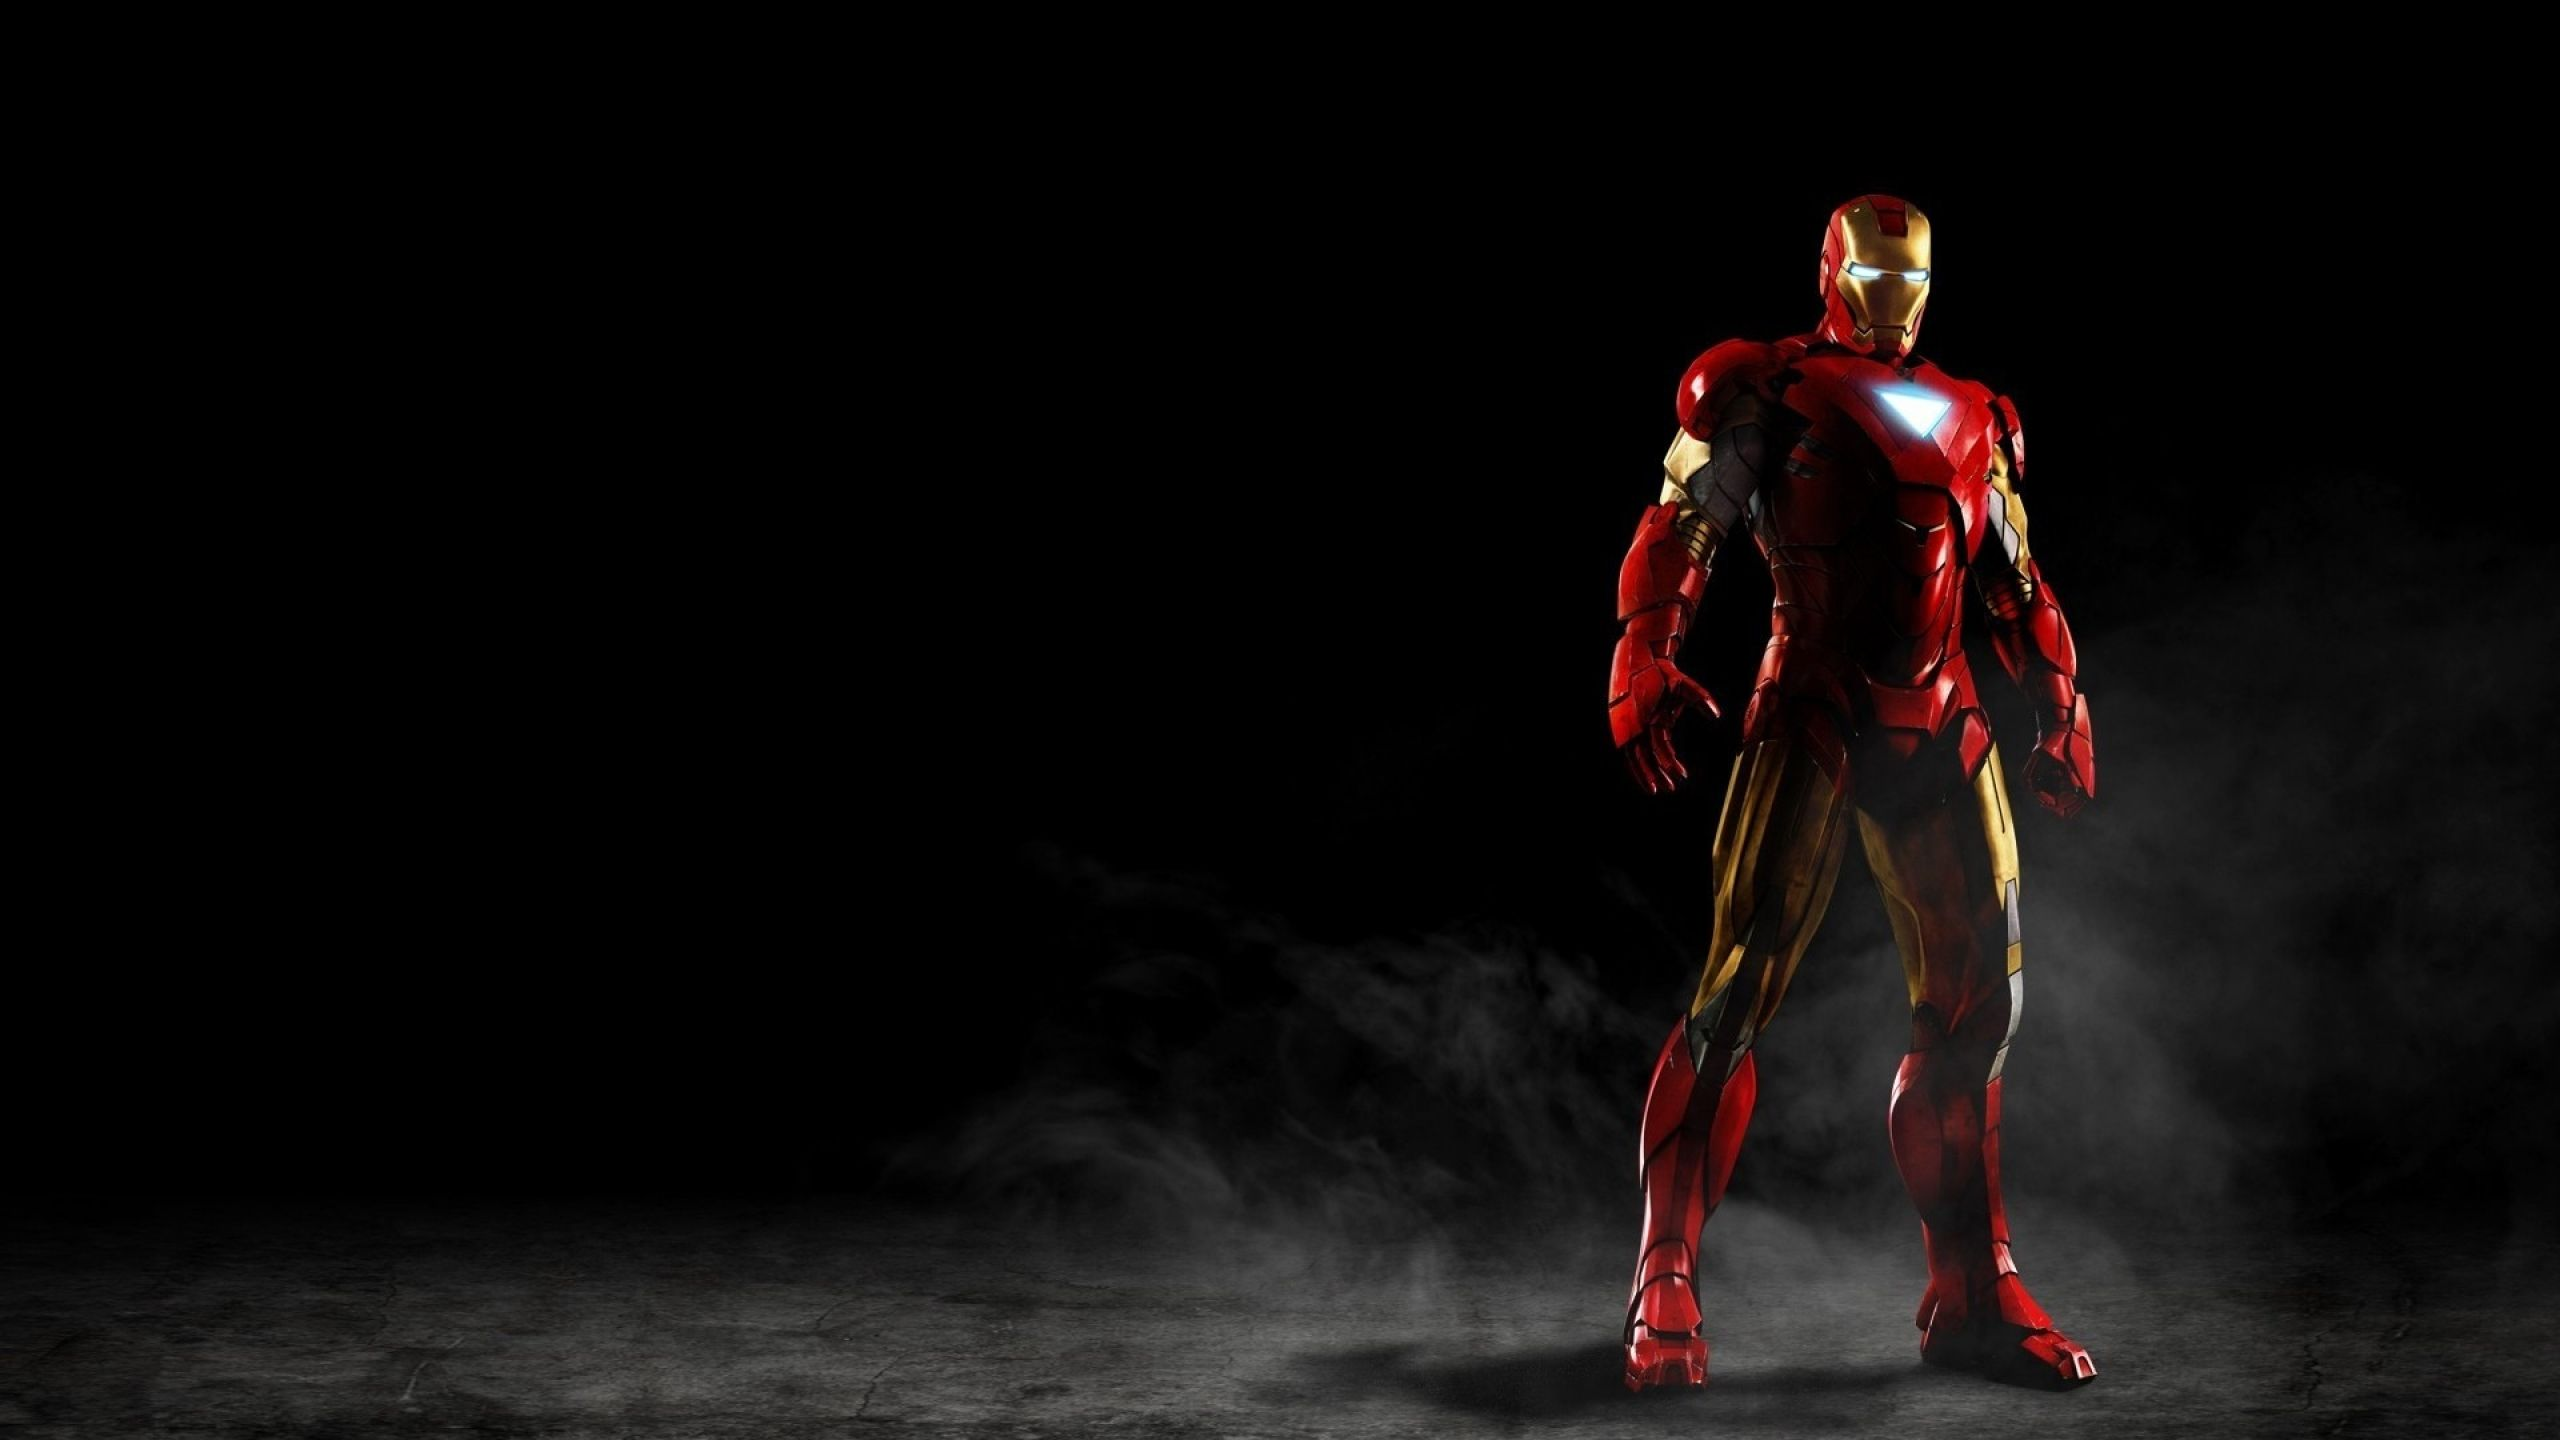 Iron Man 3 Wallpaper Hd Hd Wallpaper